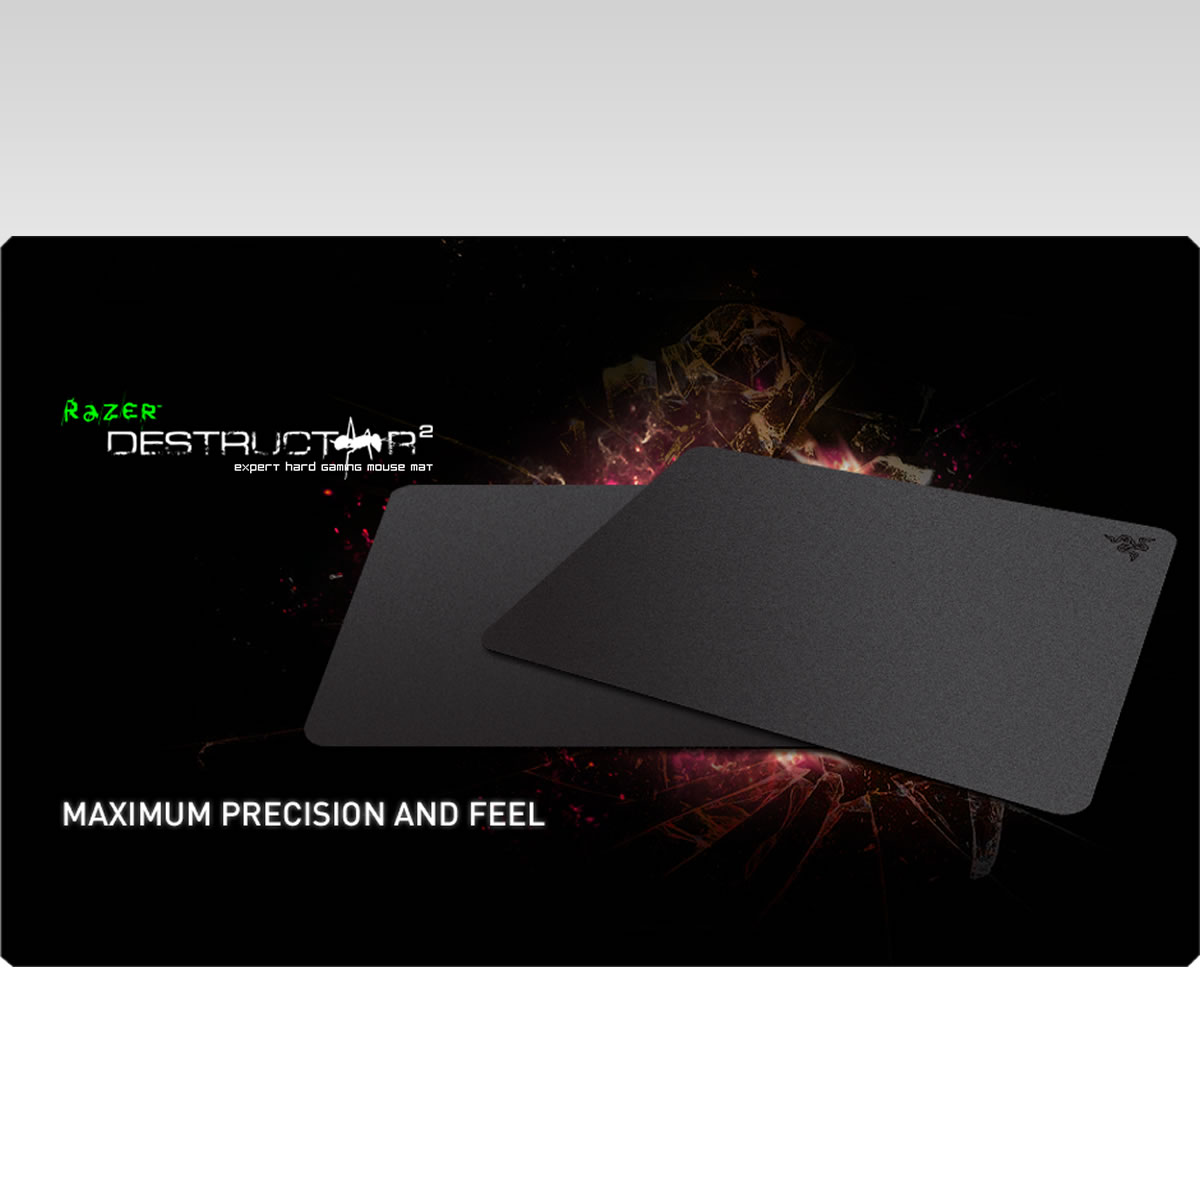 RAZER - DESTRUCTOR 2 EXPERT HARD GAMING MOUSE MAT (PC)